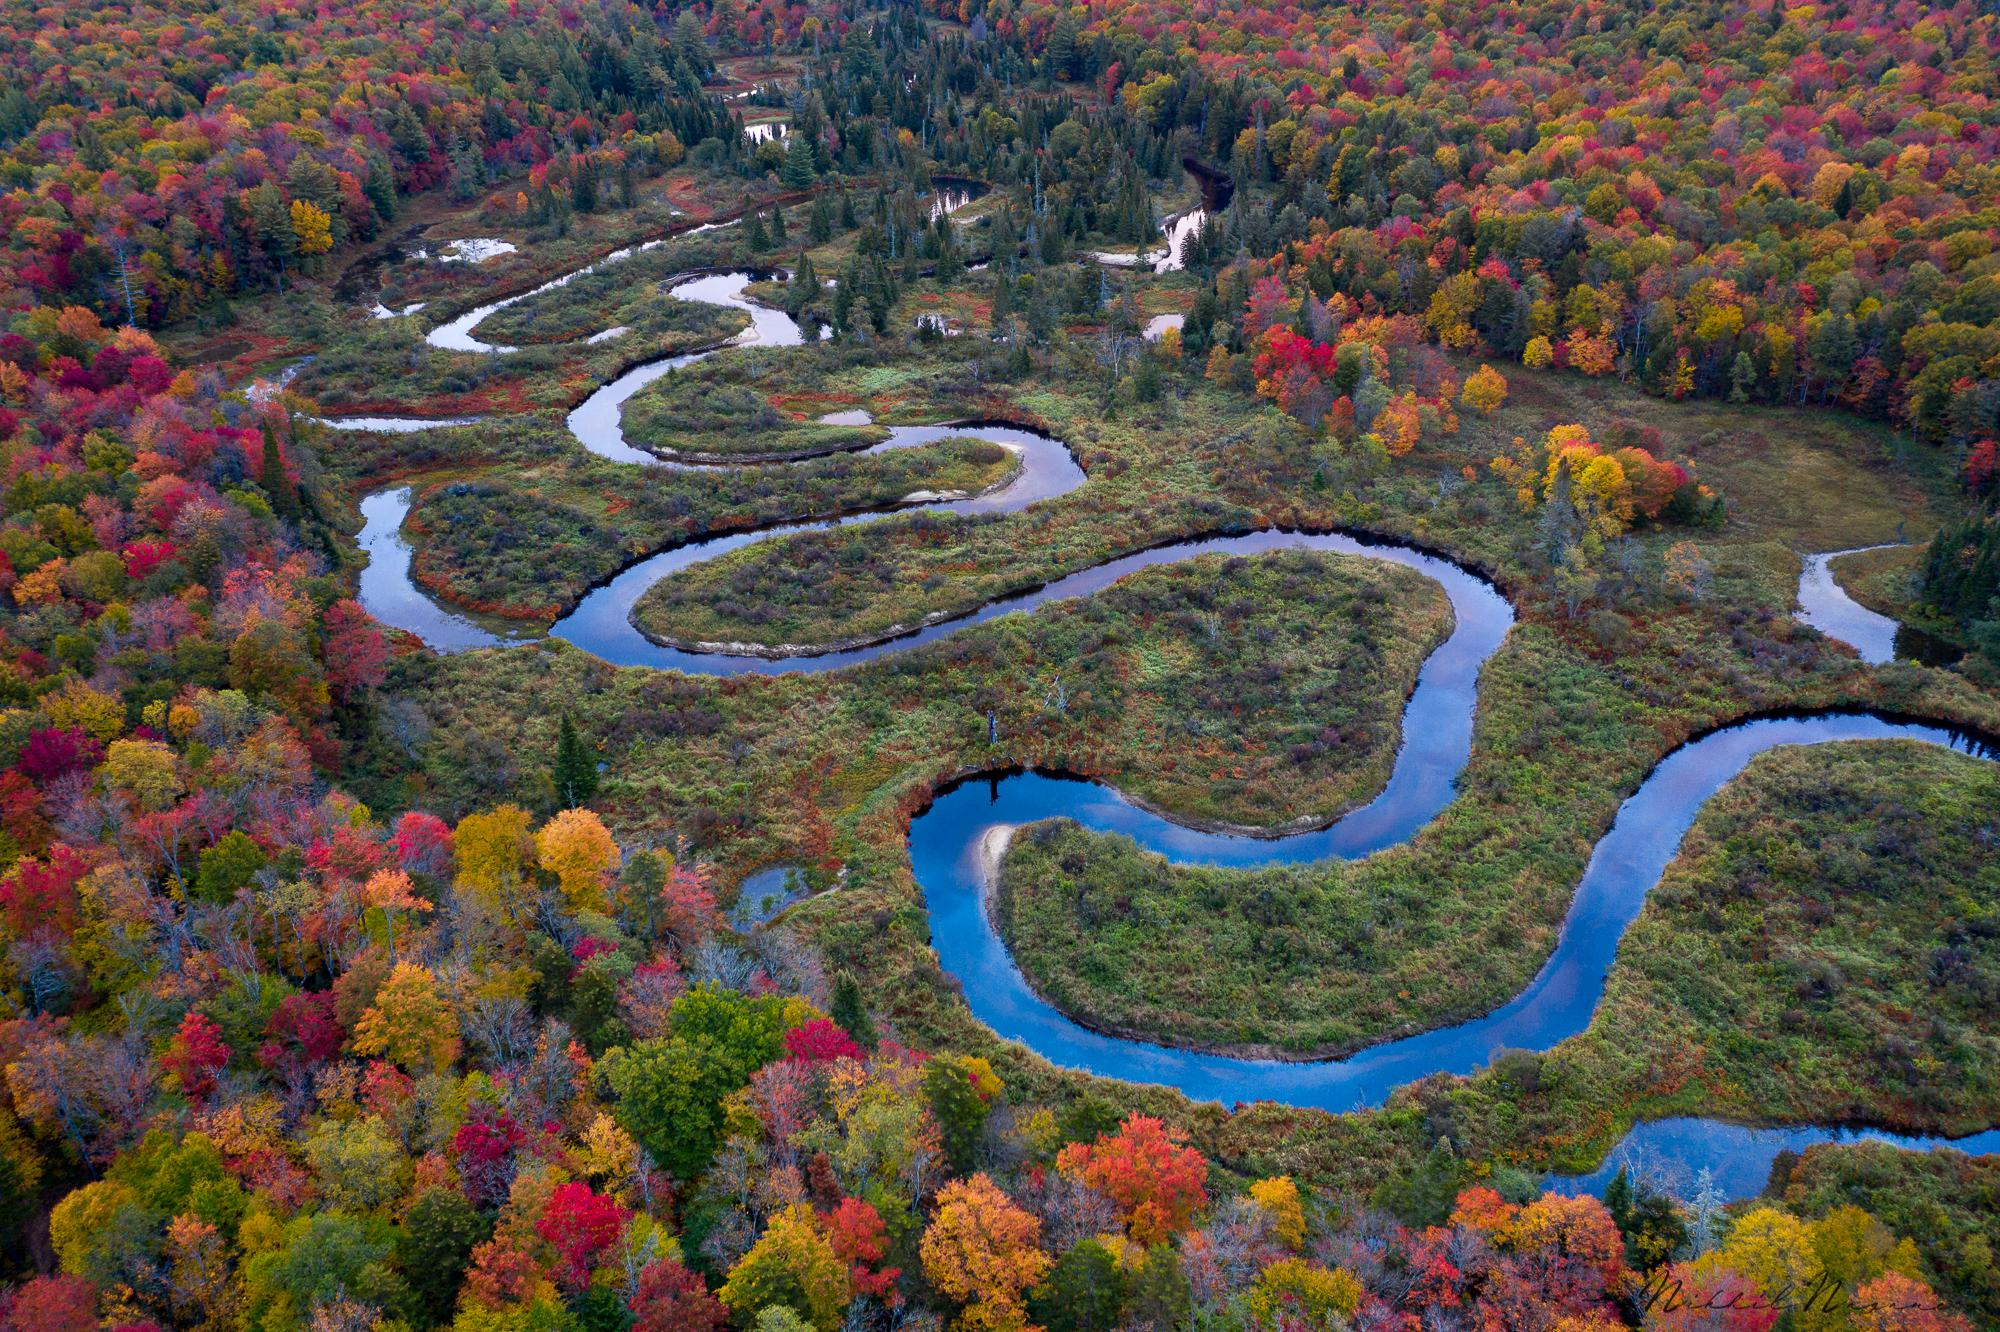 A winding river in the Adirondack Mountains, NY